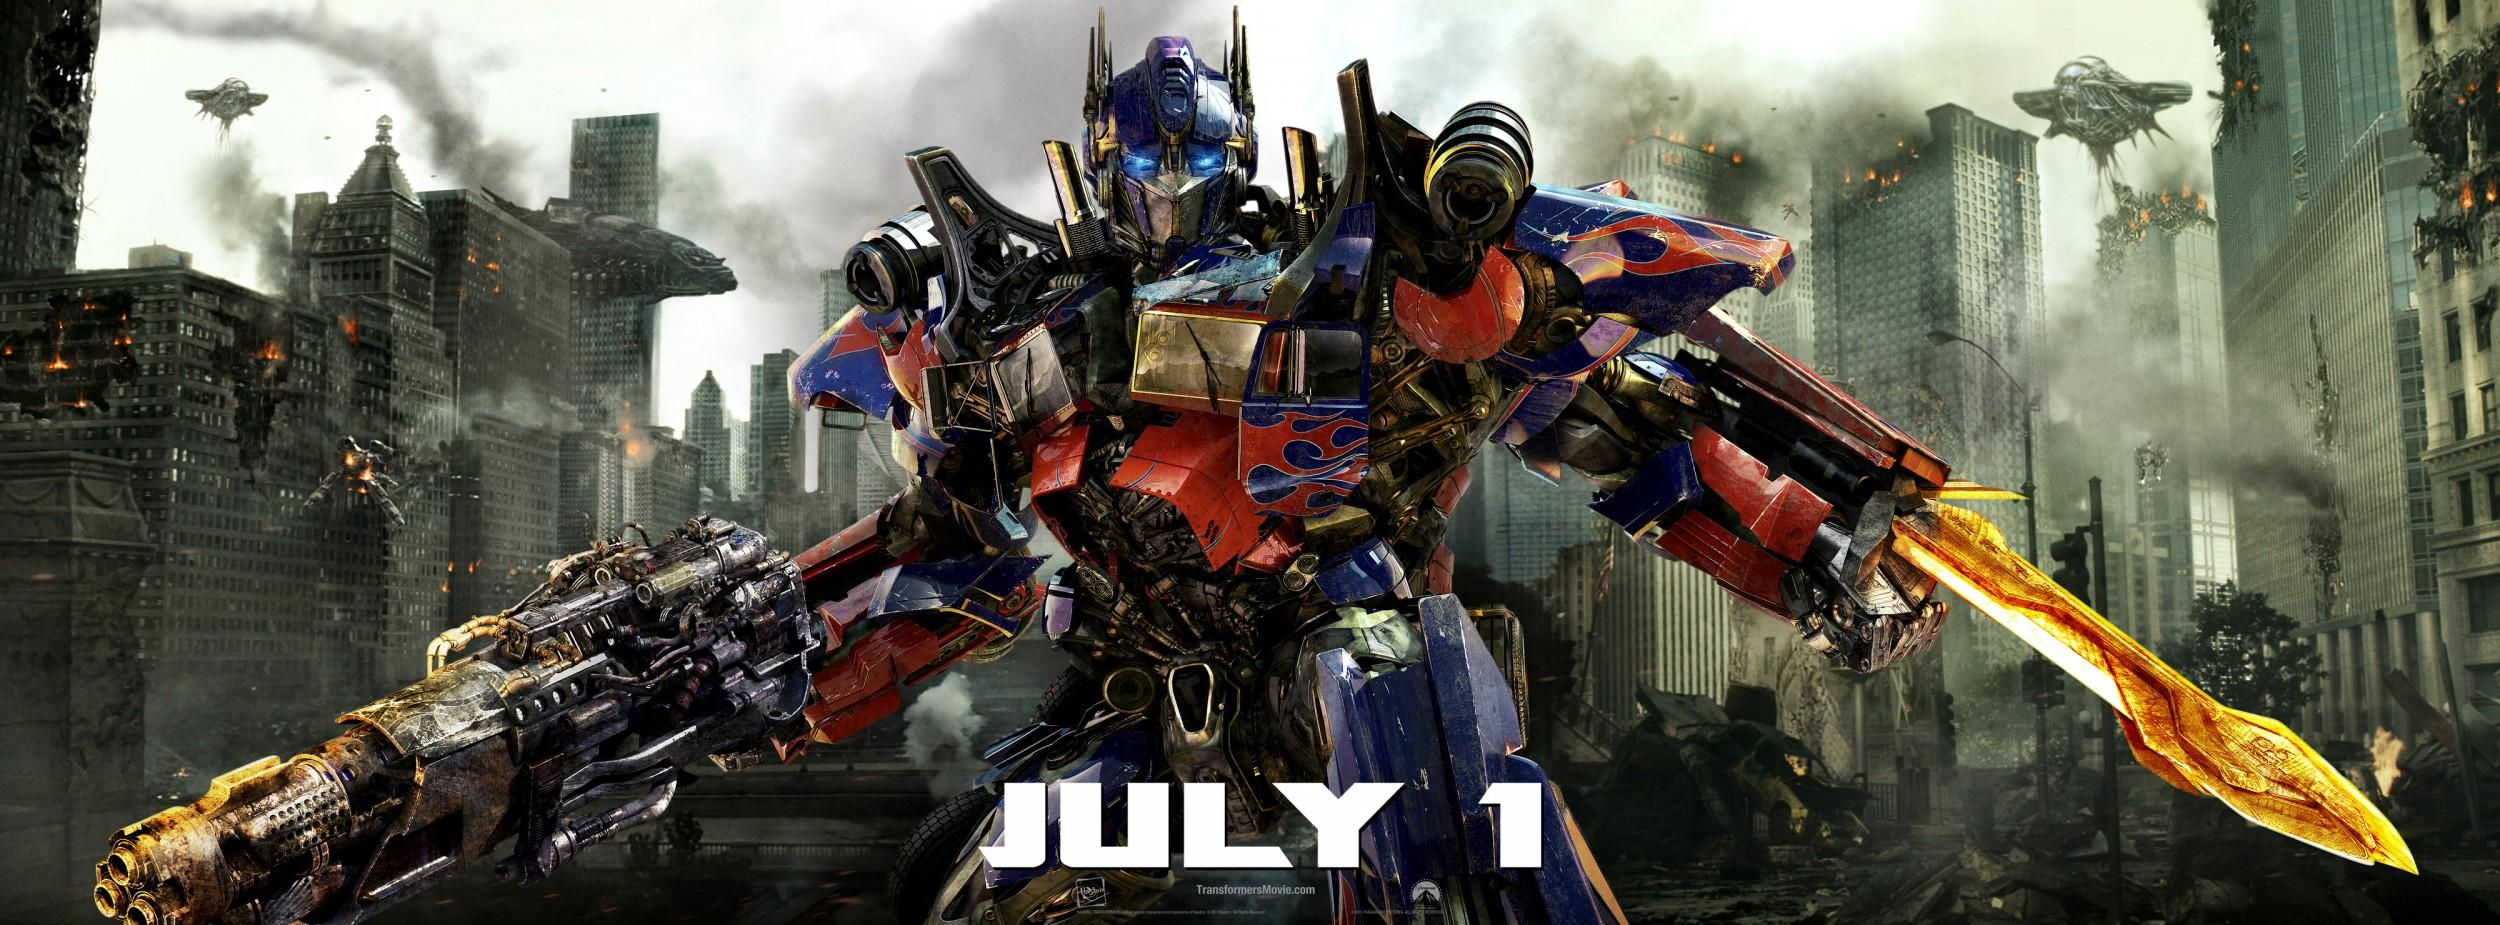 Transformers: Dark of the Moon: Mega image au format Movie Poster - Internet Movie Poster Gallery Prix